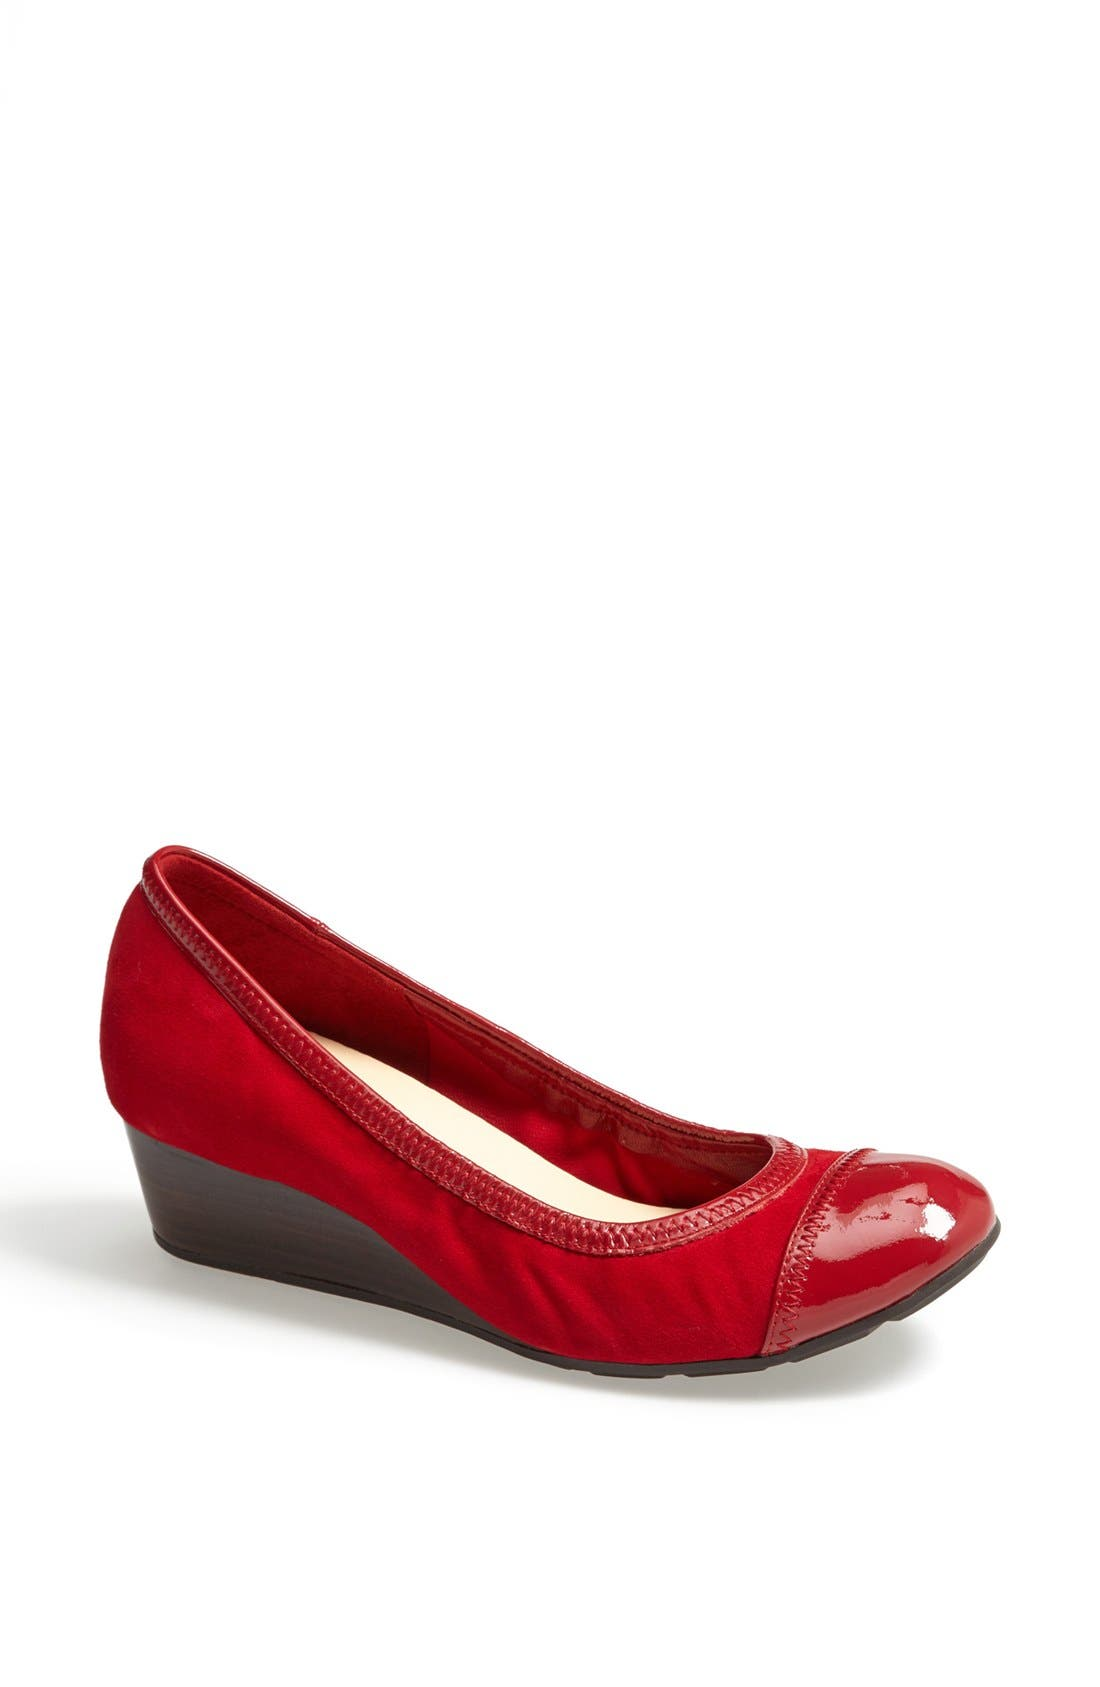 Main Image - Cole Haan 'Milly' Wedge Pump